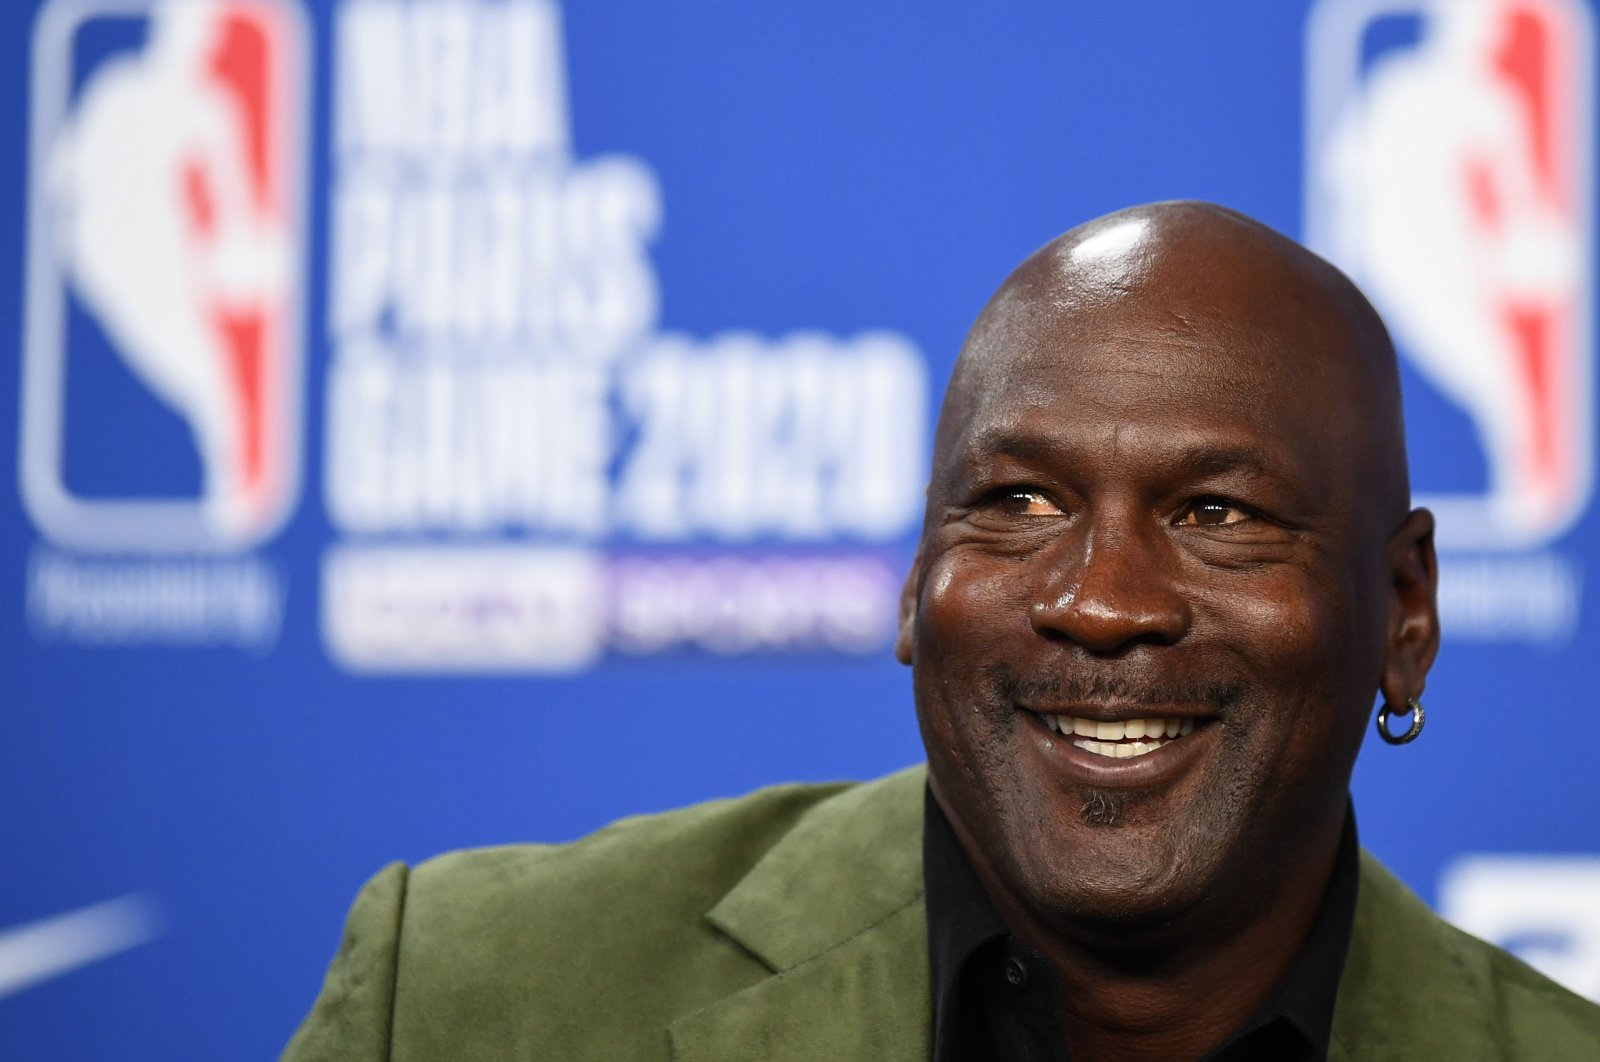 In this file photo former NBA star and owner of Charlotte Hornets team Michael Jordan looks on as he addresses a press conference ahead of the NBA basketball match between Milwaukee Bucks and Charlotte Hornets at The AccorHotels Arena in Paris on January 24, 2020. (AFP Photo)